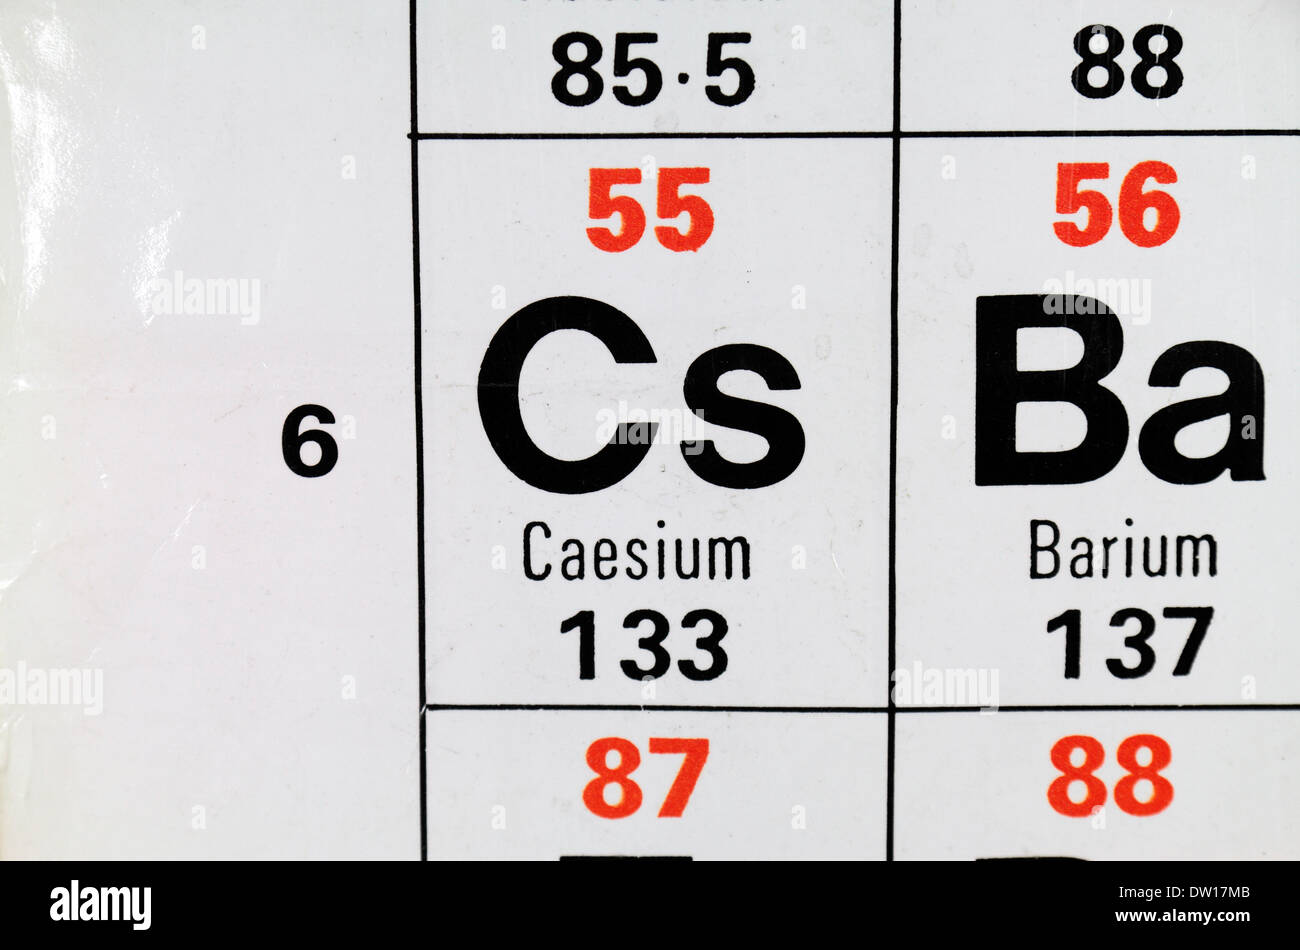 Caesium cs as it appears on the periodic table stock photo caesium cs as it appears on the periodic table gamestrikefo Gallery